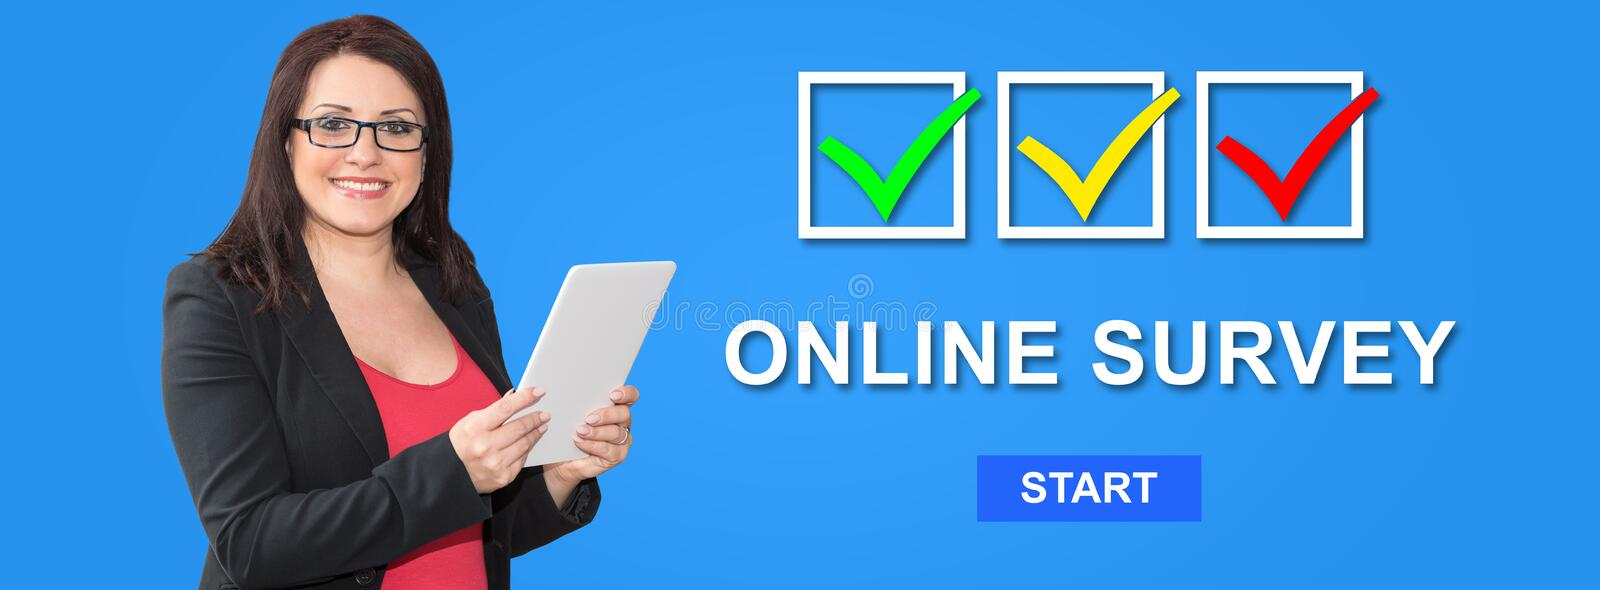 Concept of online survey royalty free stock photo